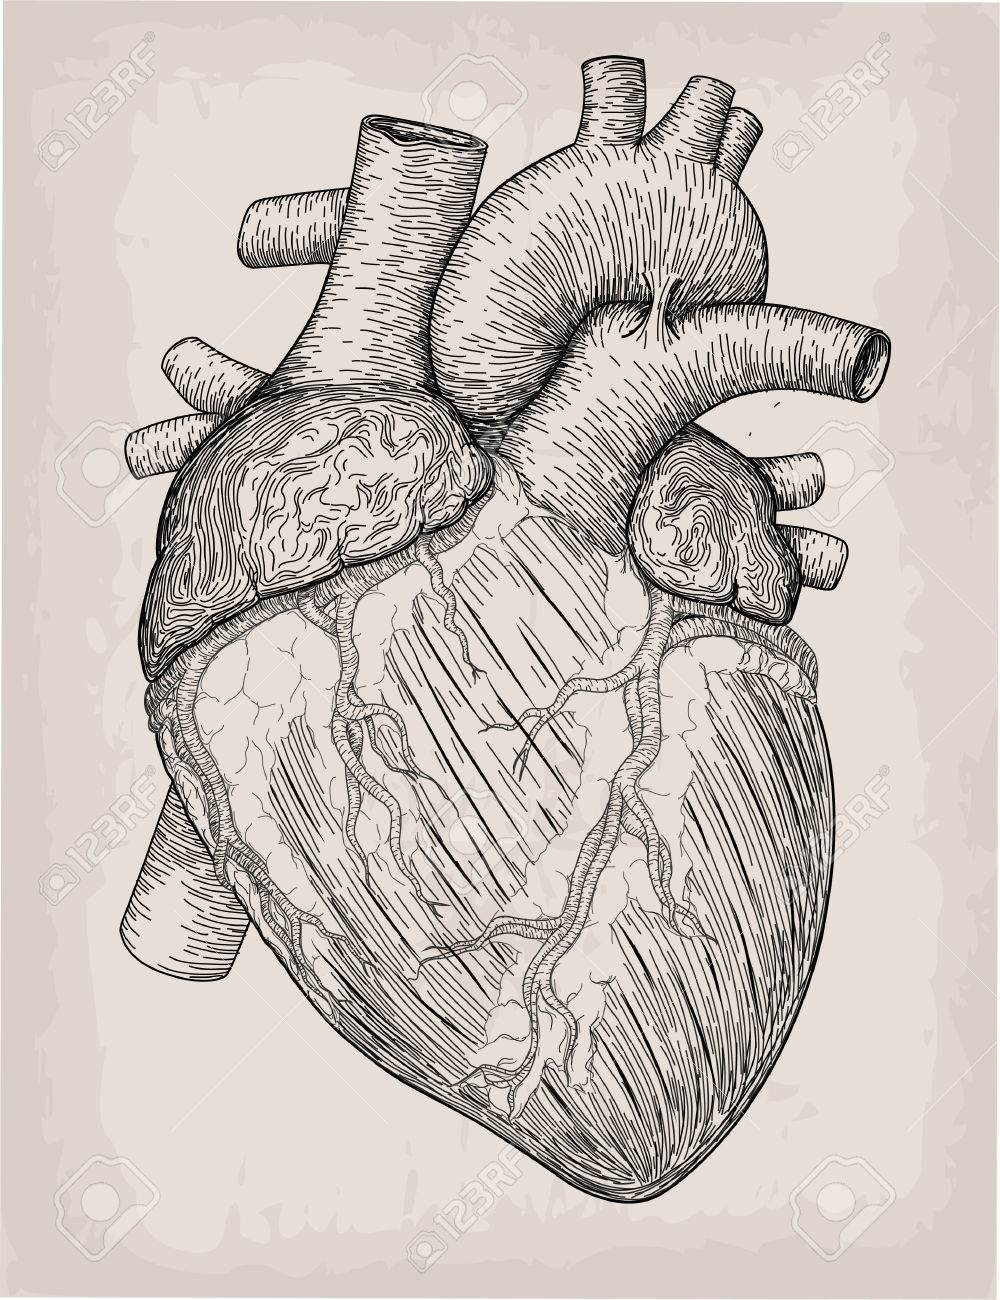 Human Heart Hand Drawn Anatomical Sketch Medicine Vector